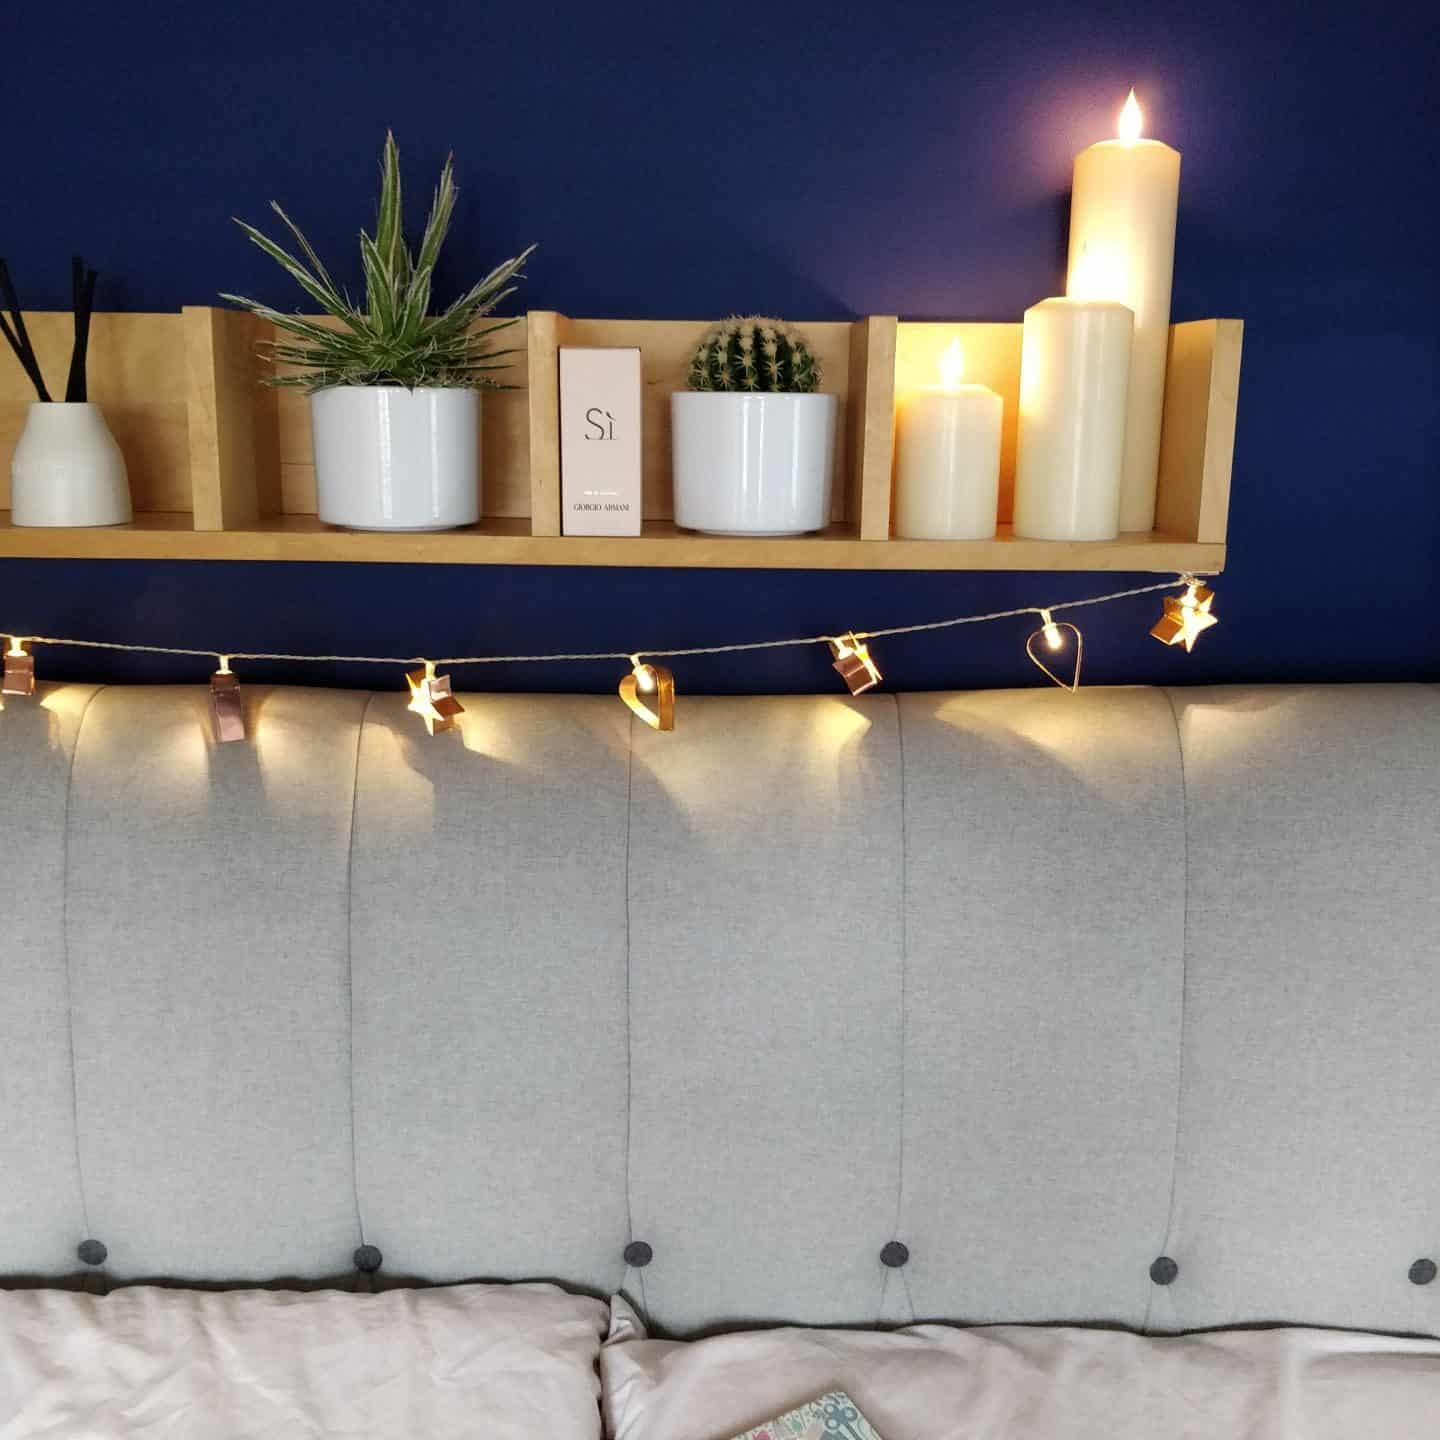 Realistic LED candles from Candled on a bedroom shelf